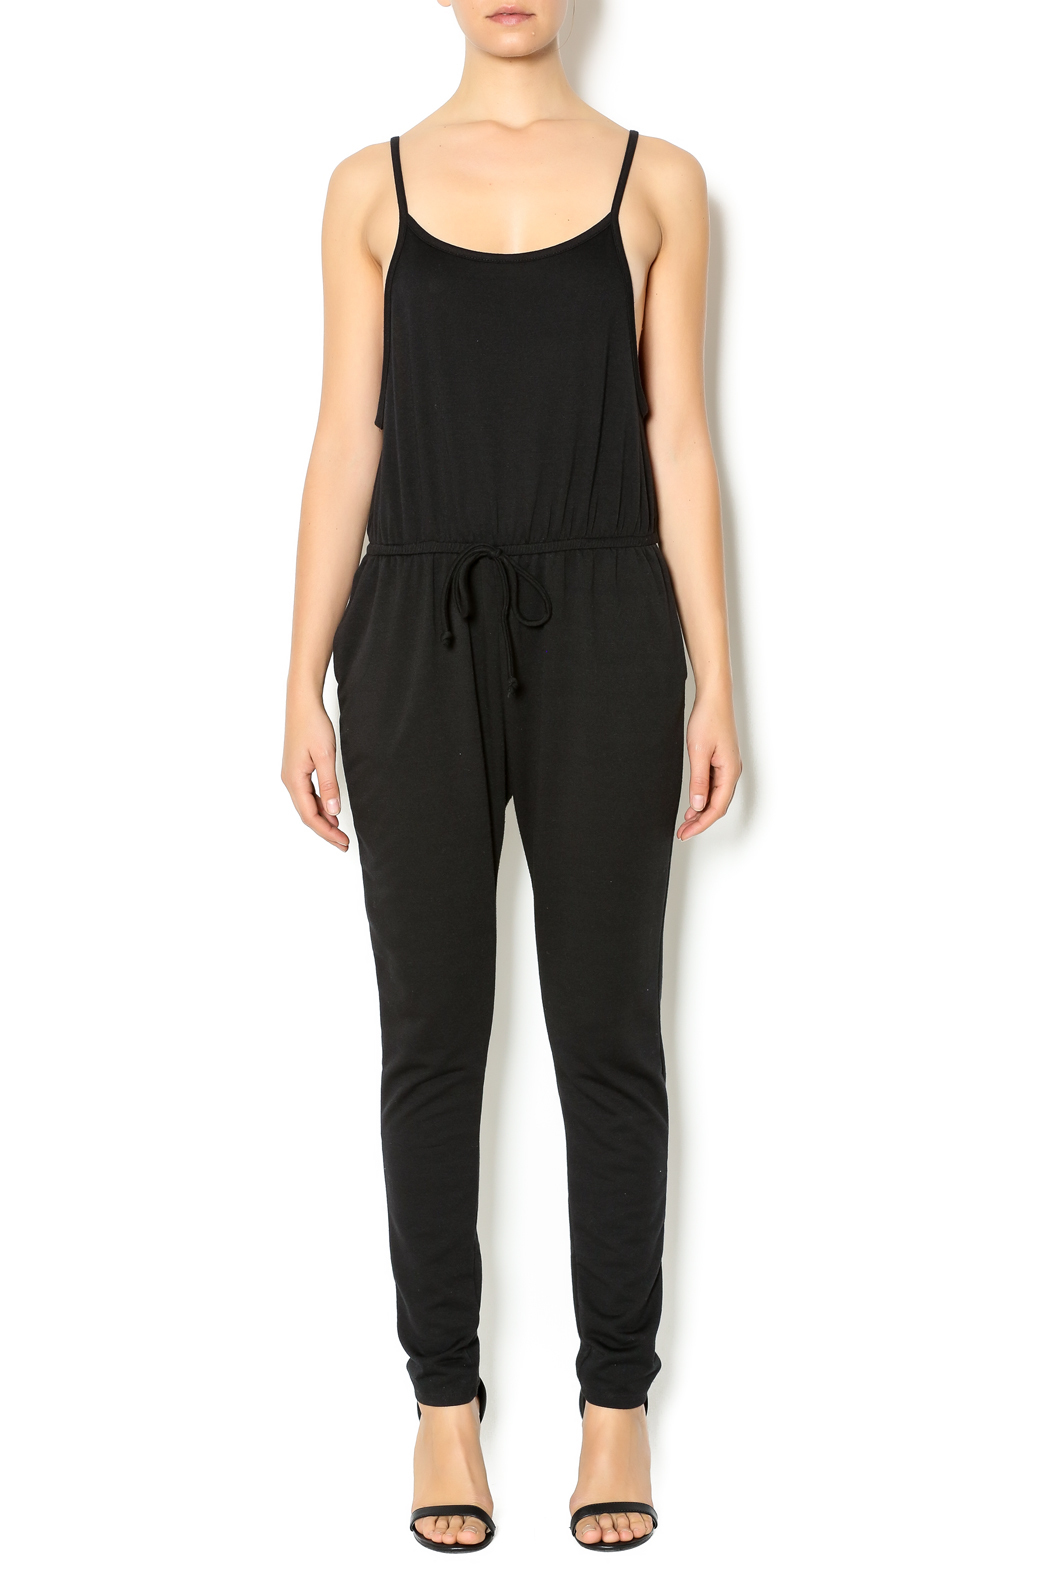 Ambiance Apparel Jersey Drawstring Jumpsuit From Pasadena By